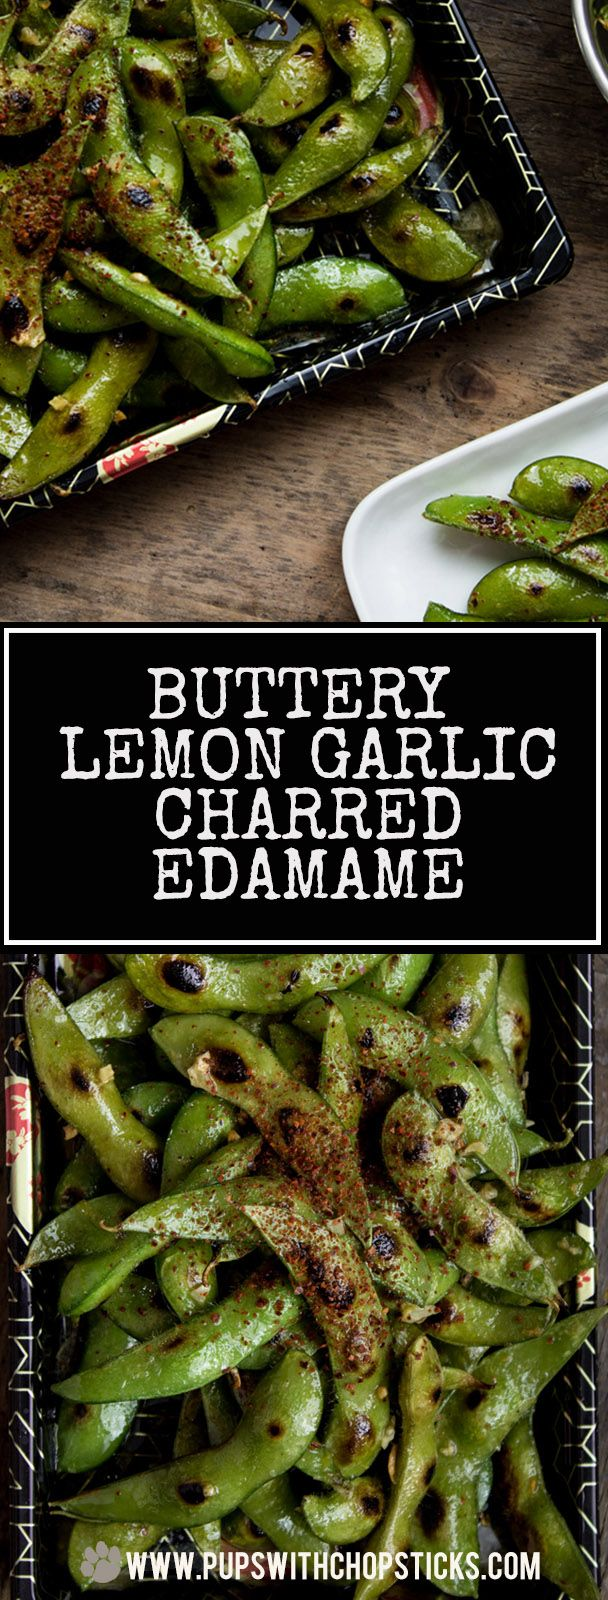 Easy and quick to make charred Edamame recipe loaded with natural umami and tossed with a garlicky lemon butter. Fantastic as a quick and flavorful snack for any time of the day or event.